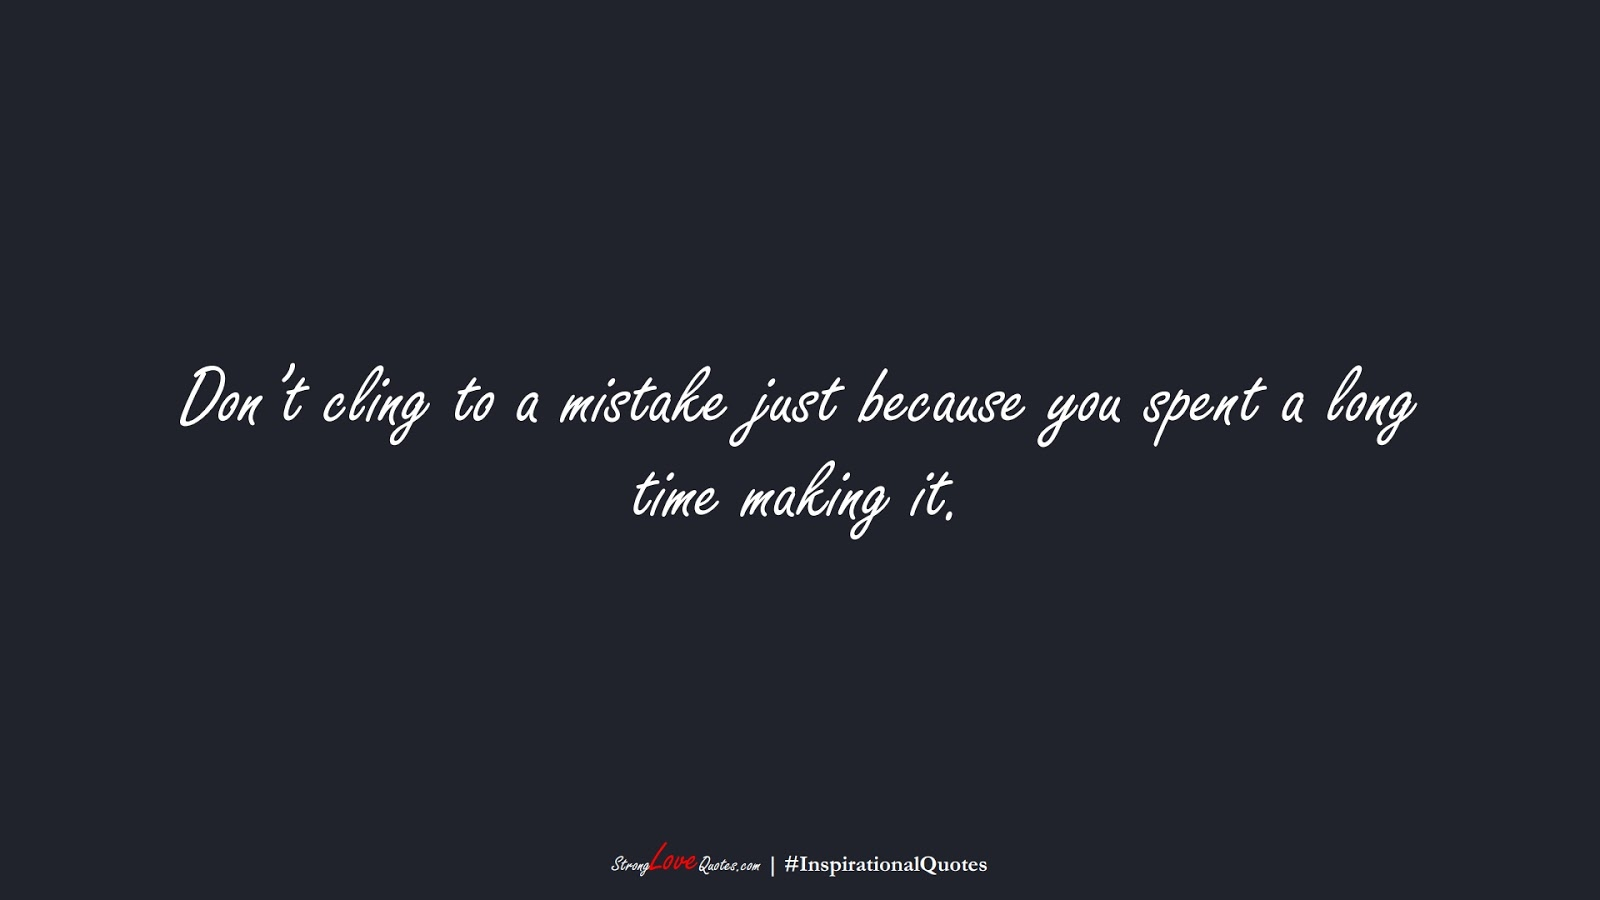 Don't cling to a mistake just because you spent a long time making it.FALSE